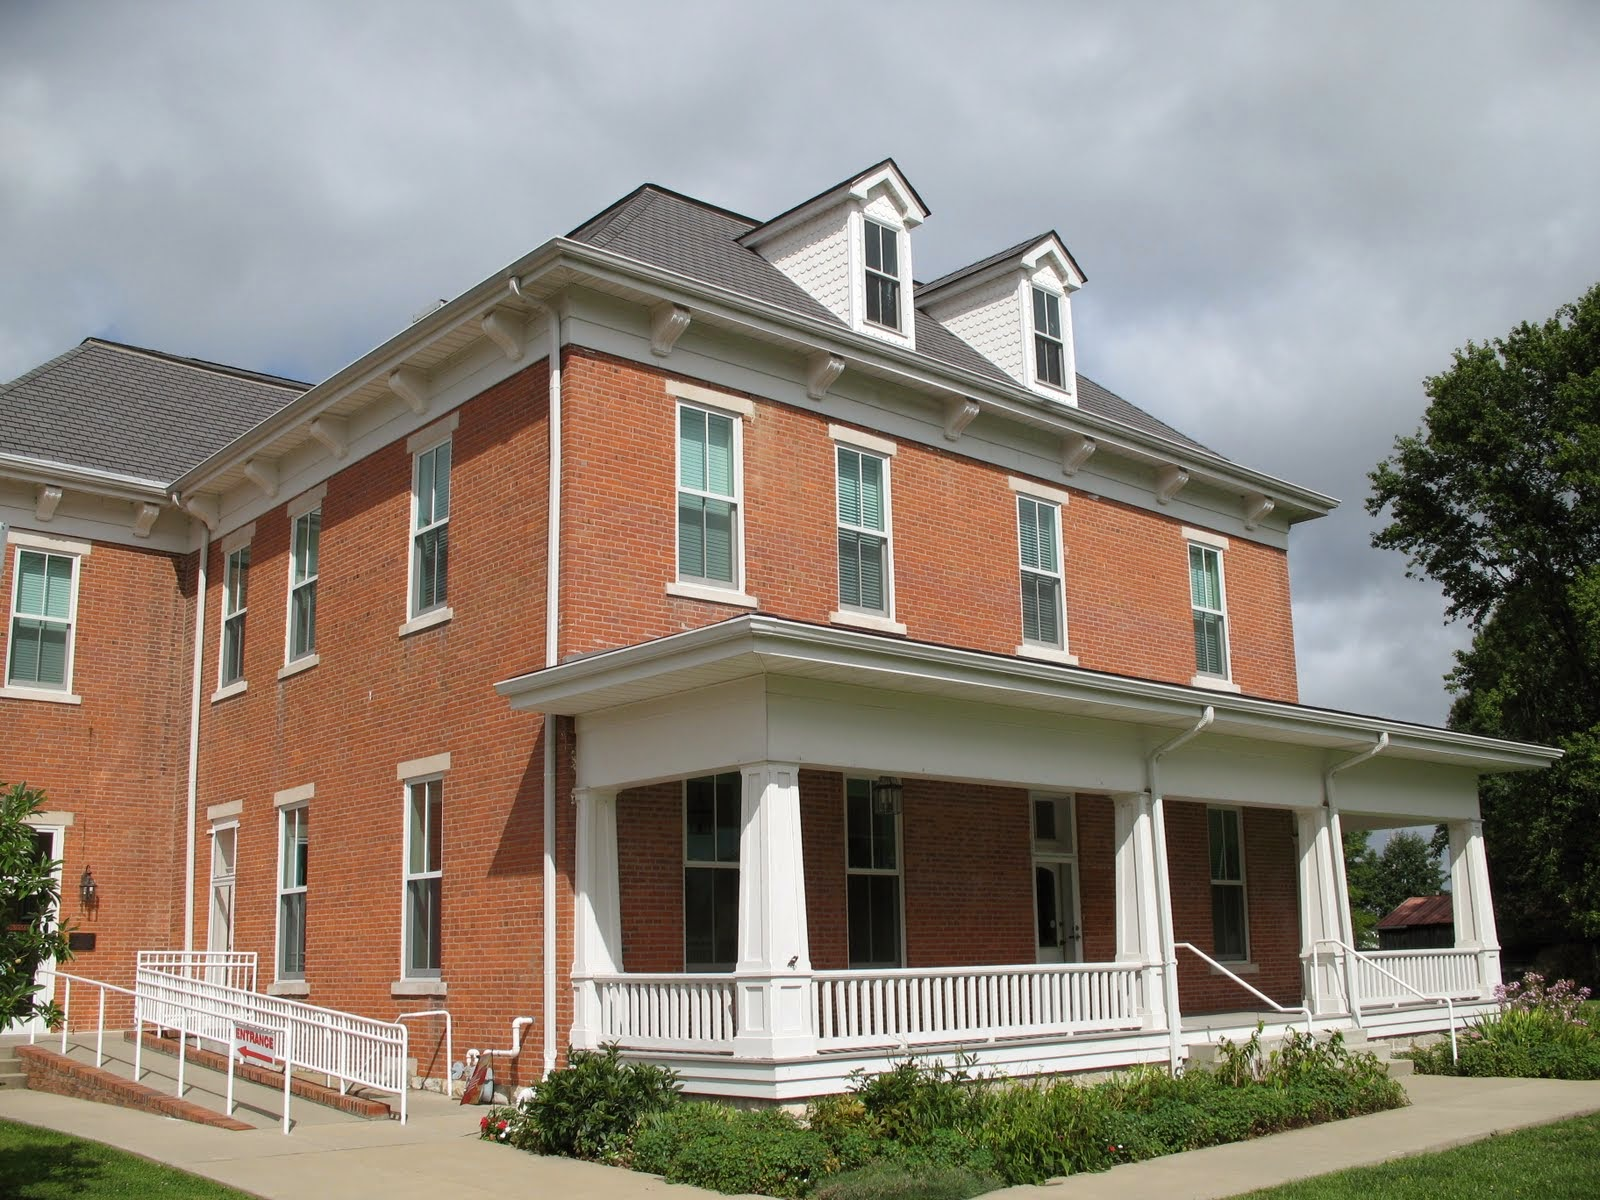 The Scott County Heritage Center and Museum